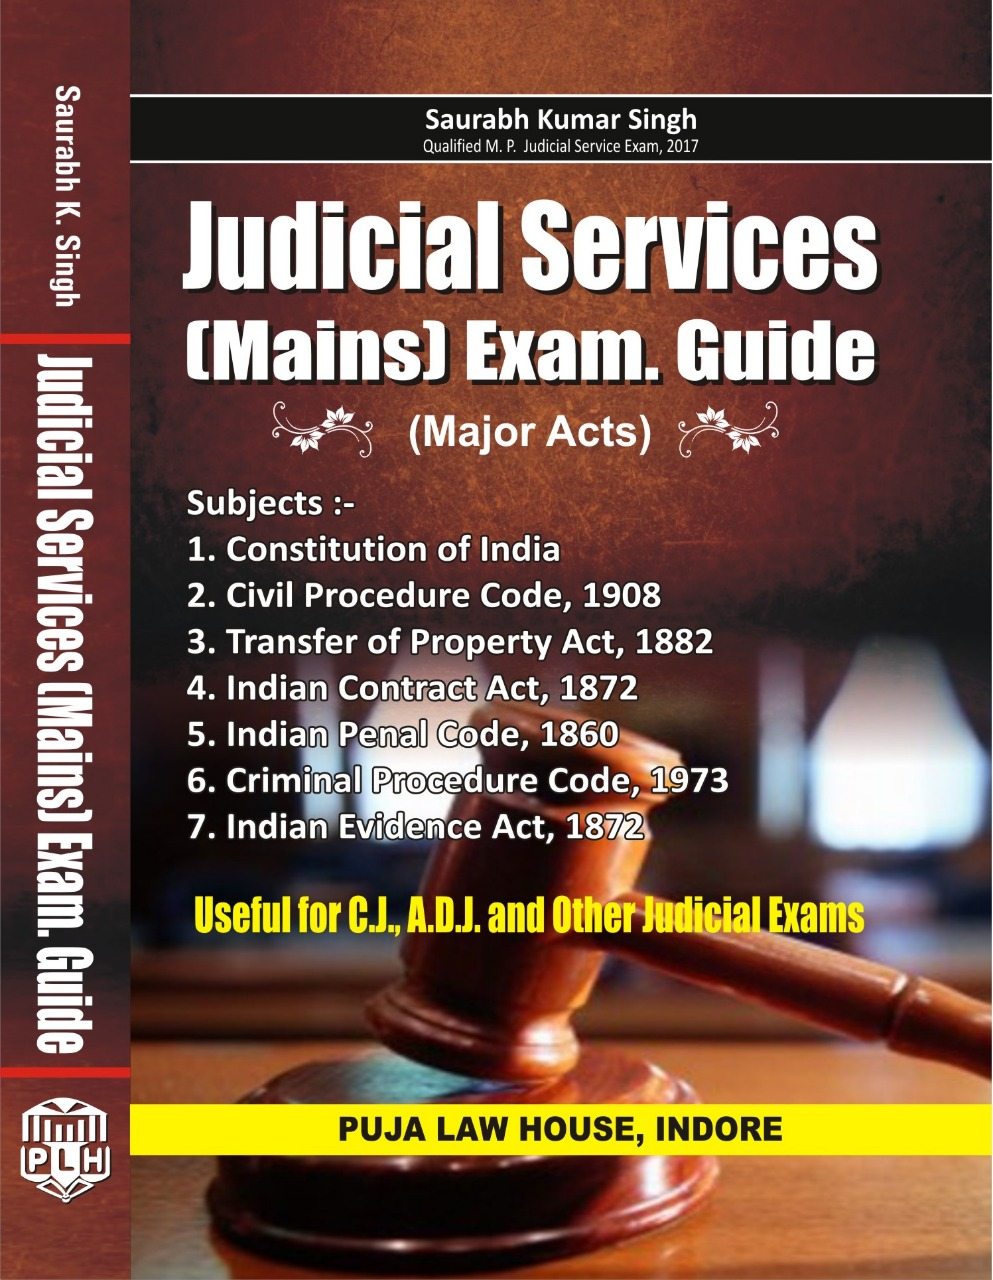 Judicial Services (Mains) Exam Guide (Major Acts)